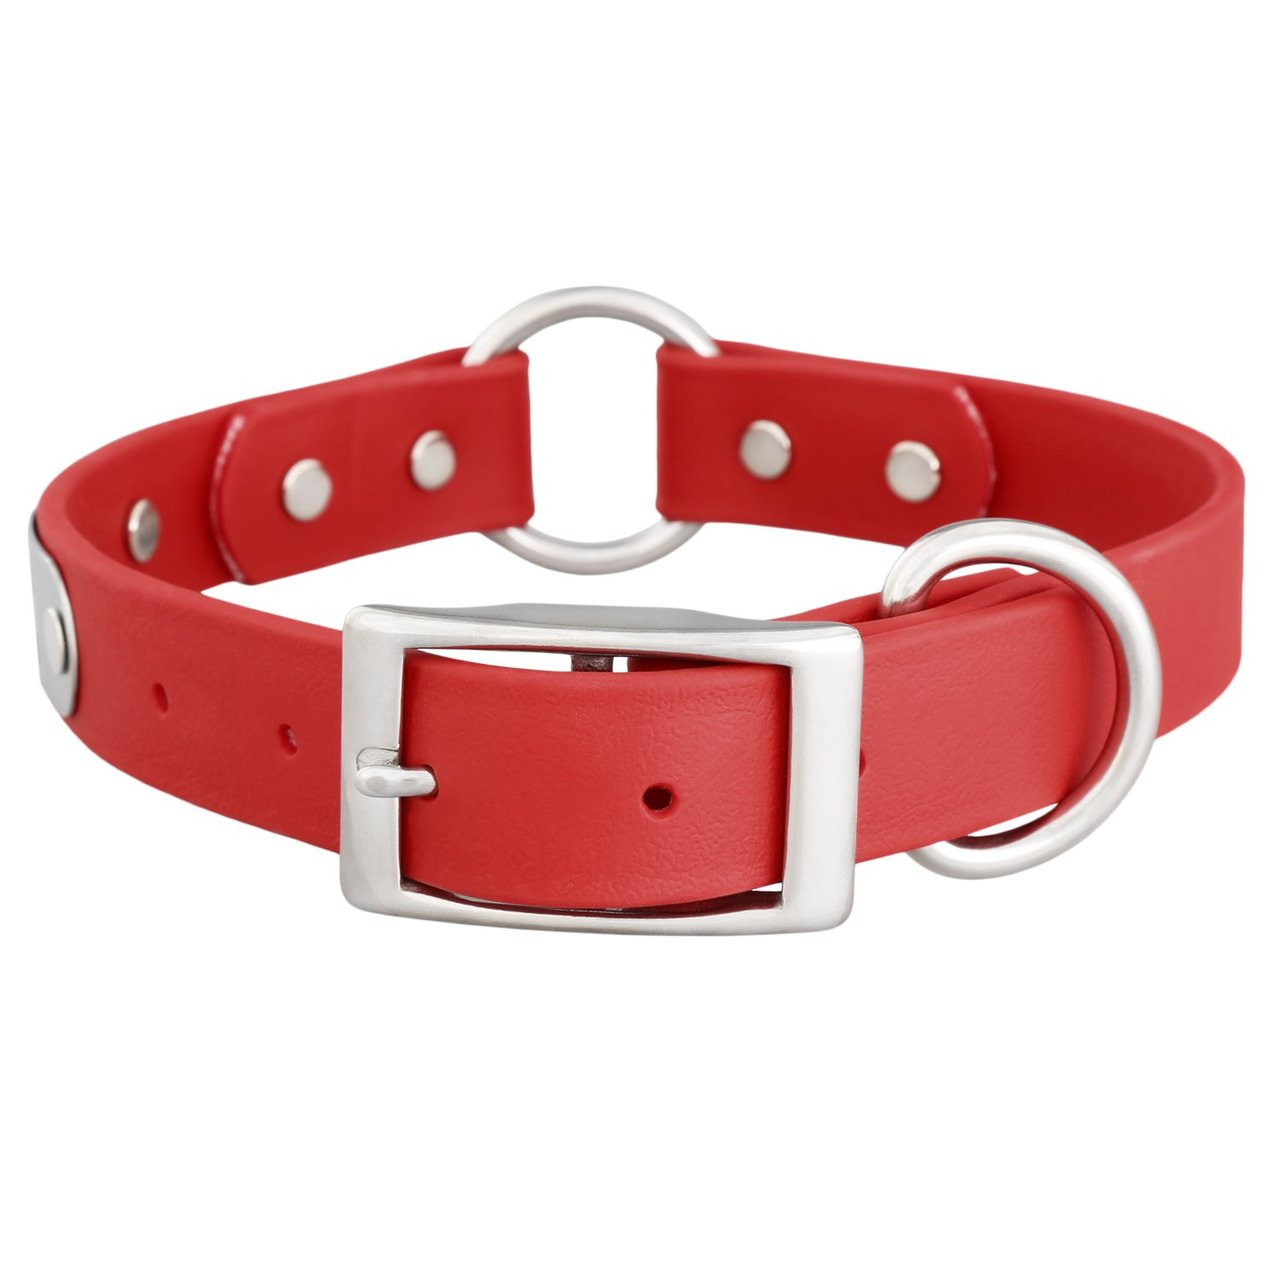 Waterproof Safety Collar with Personalized Nameplate Red Buckle View